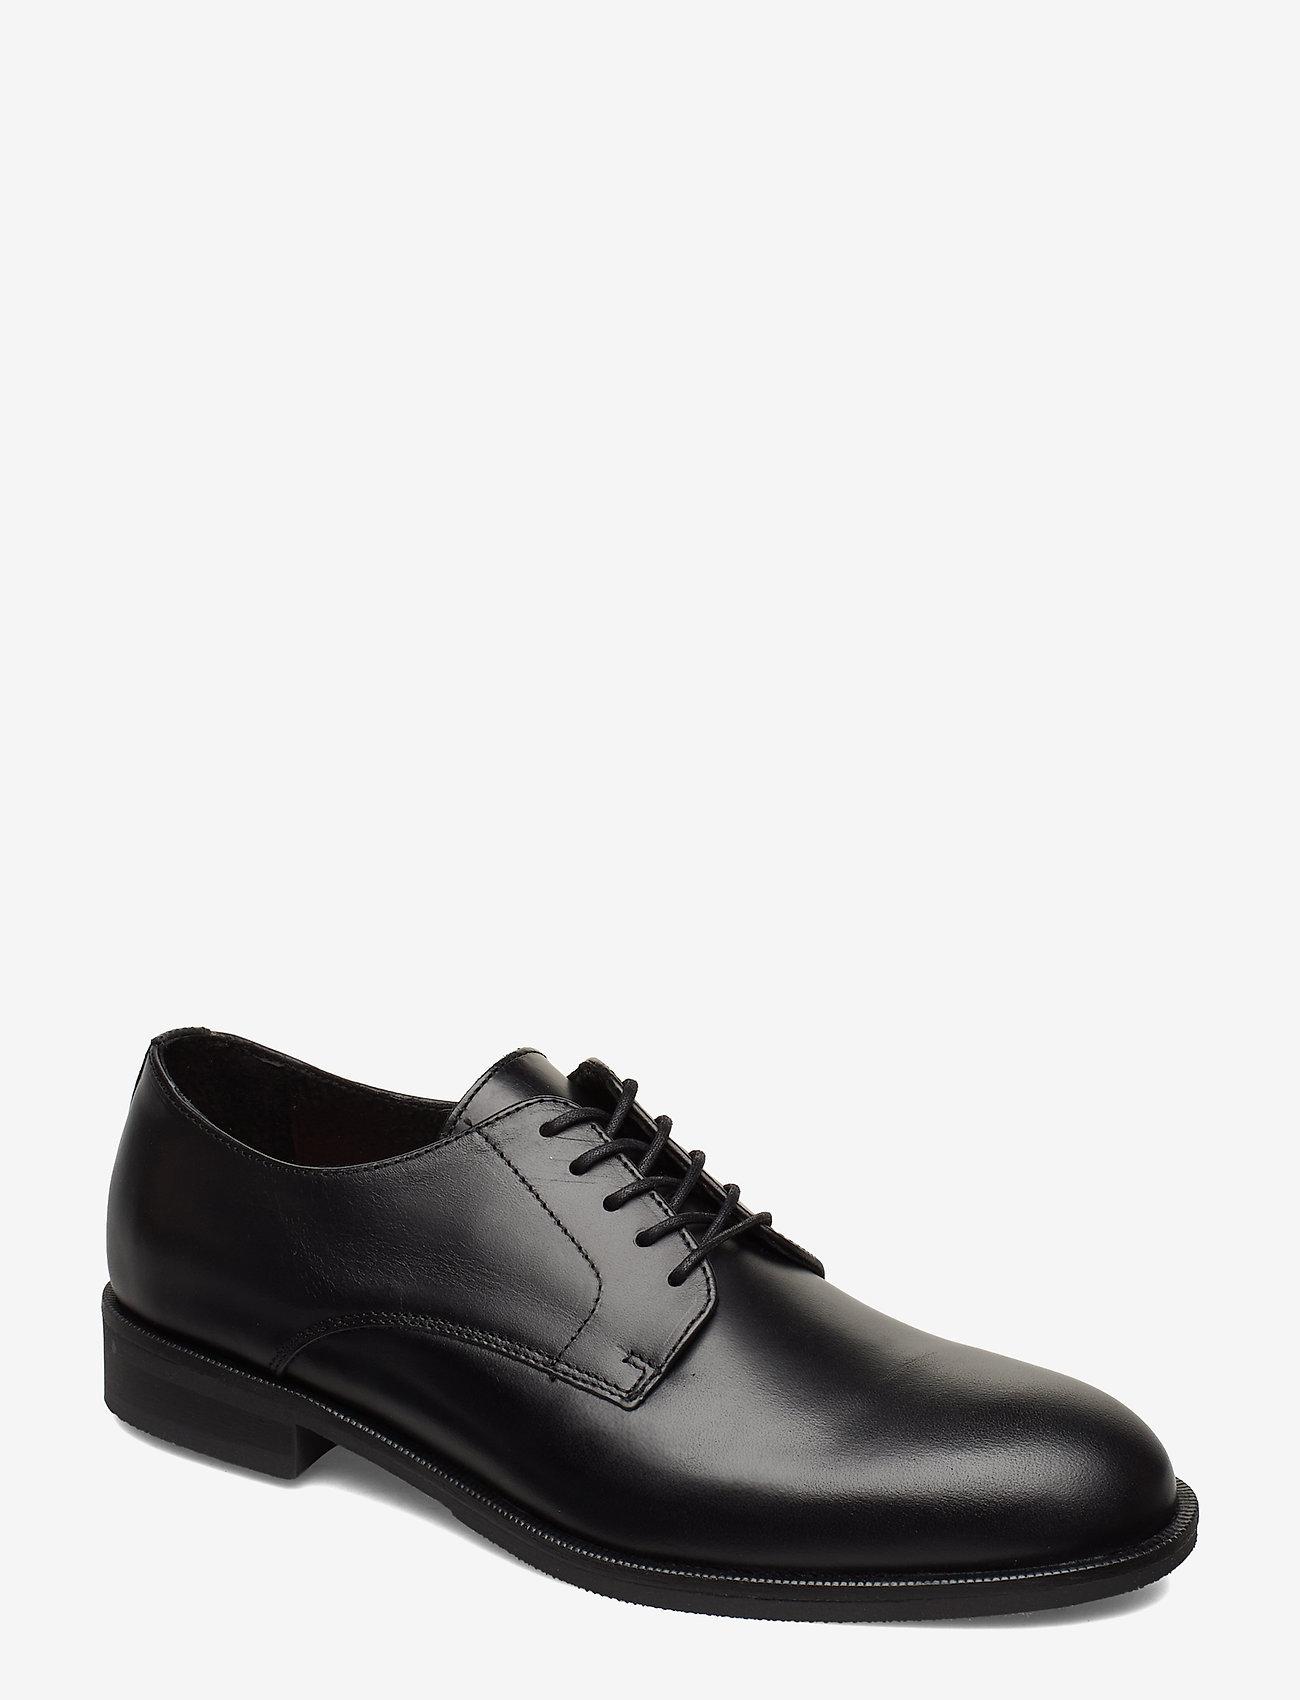 Selected Homme - SLHLOUIS LEATHER DERBY SHOE B NOOS - veterschoenen - black - 0